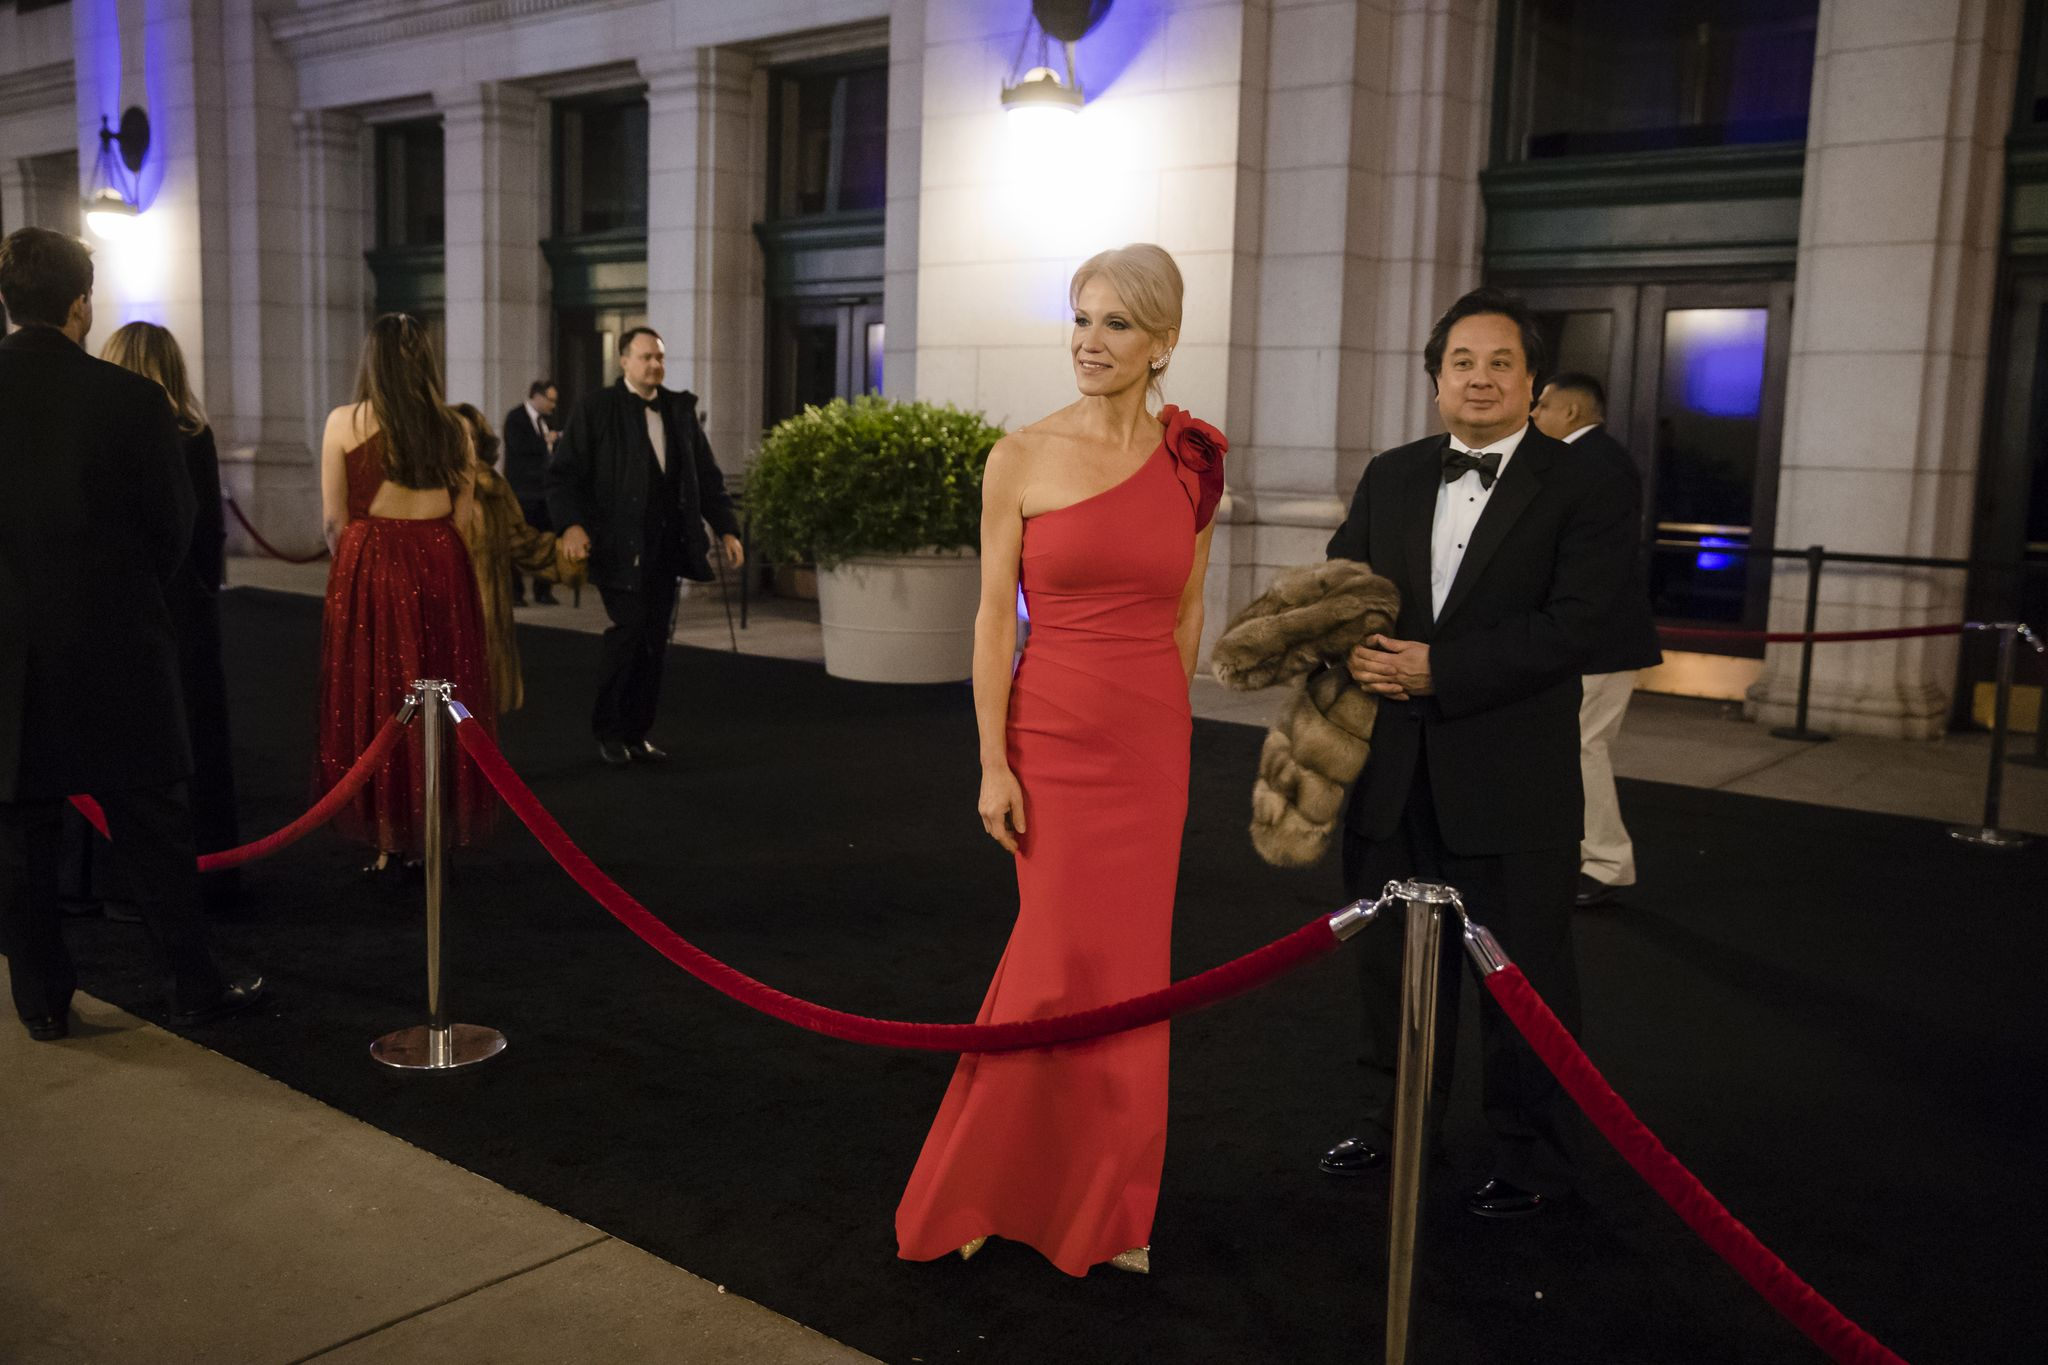 Kellyanne Conway's husband: Donald Trump 'needs a real lawyer'